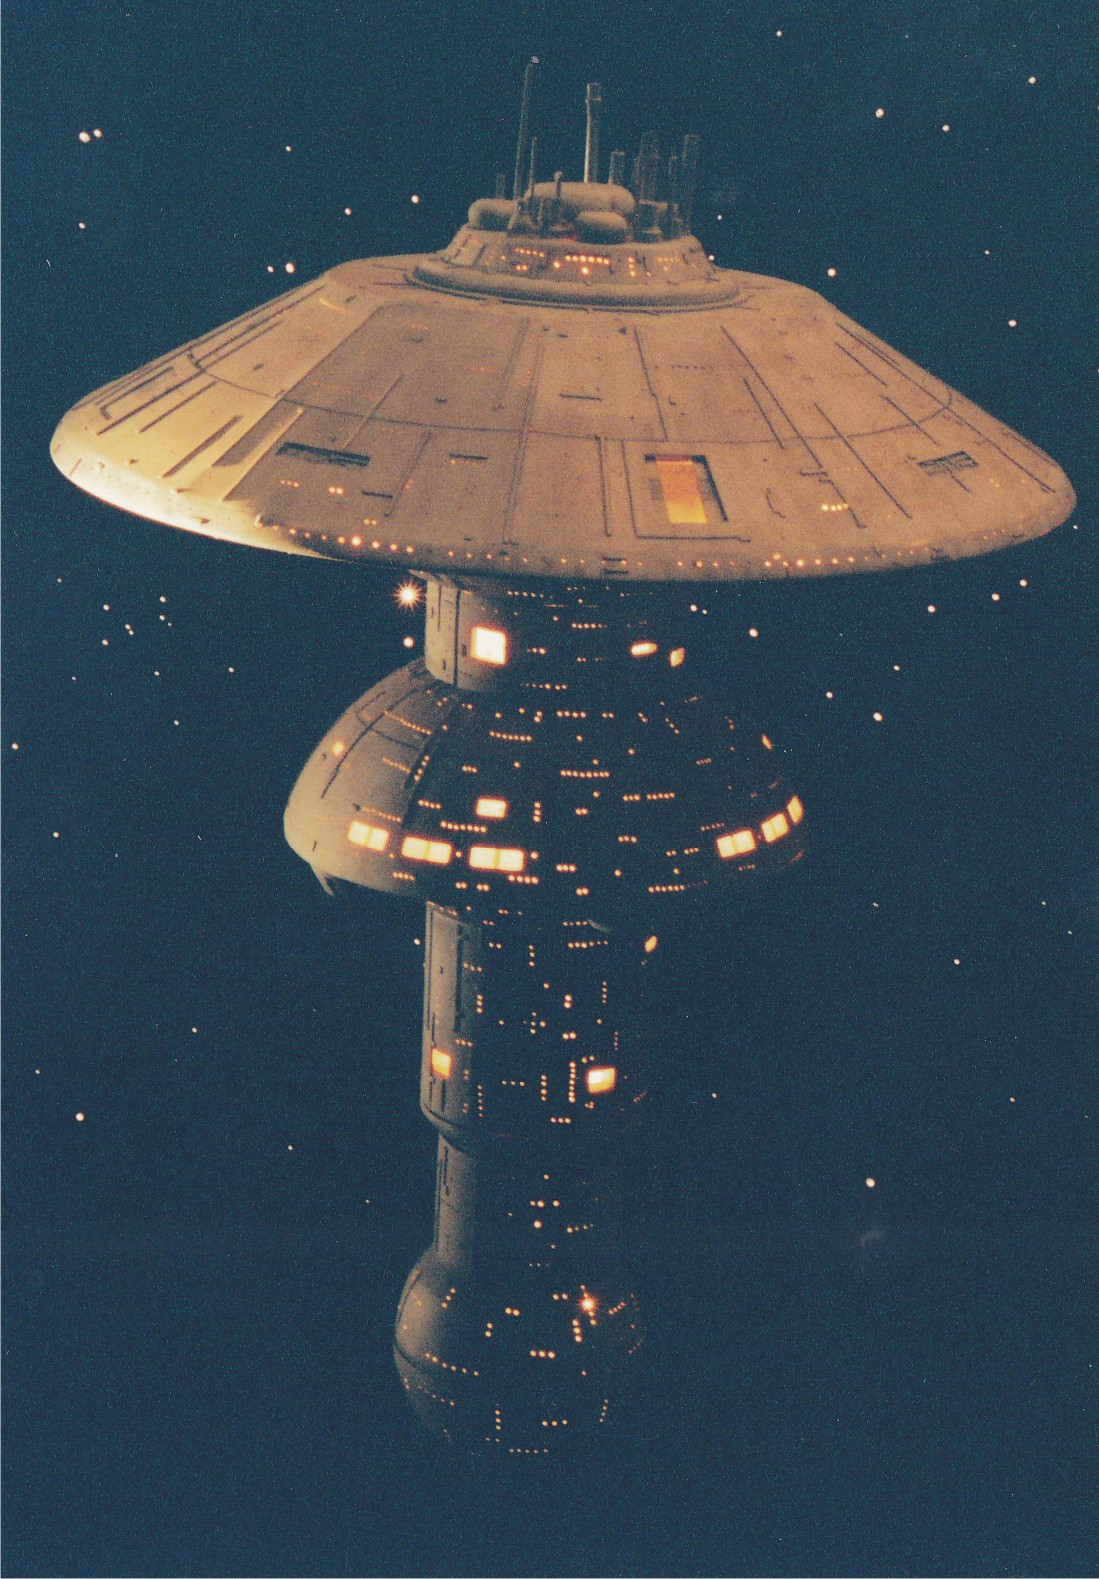 science fiction space - photo #13